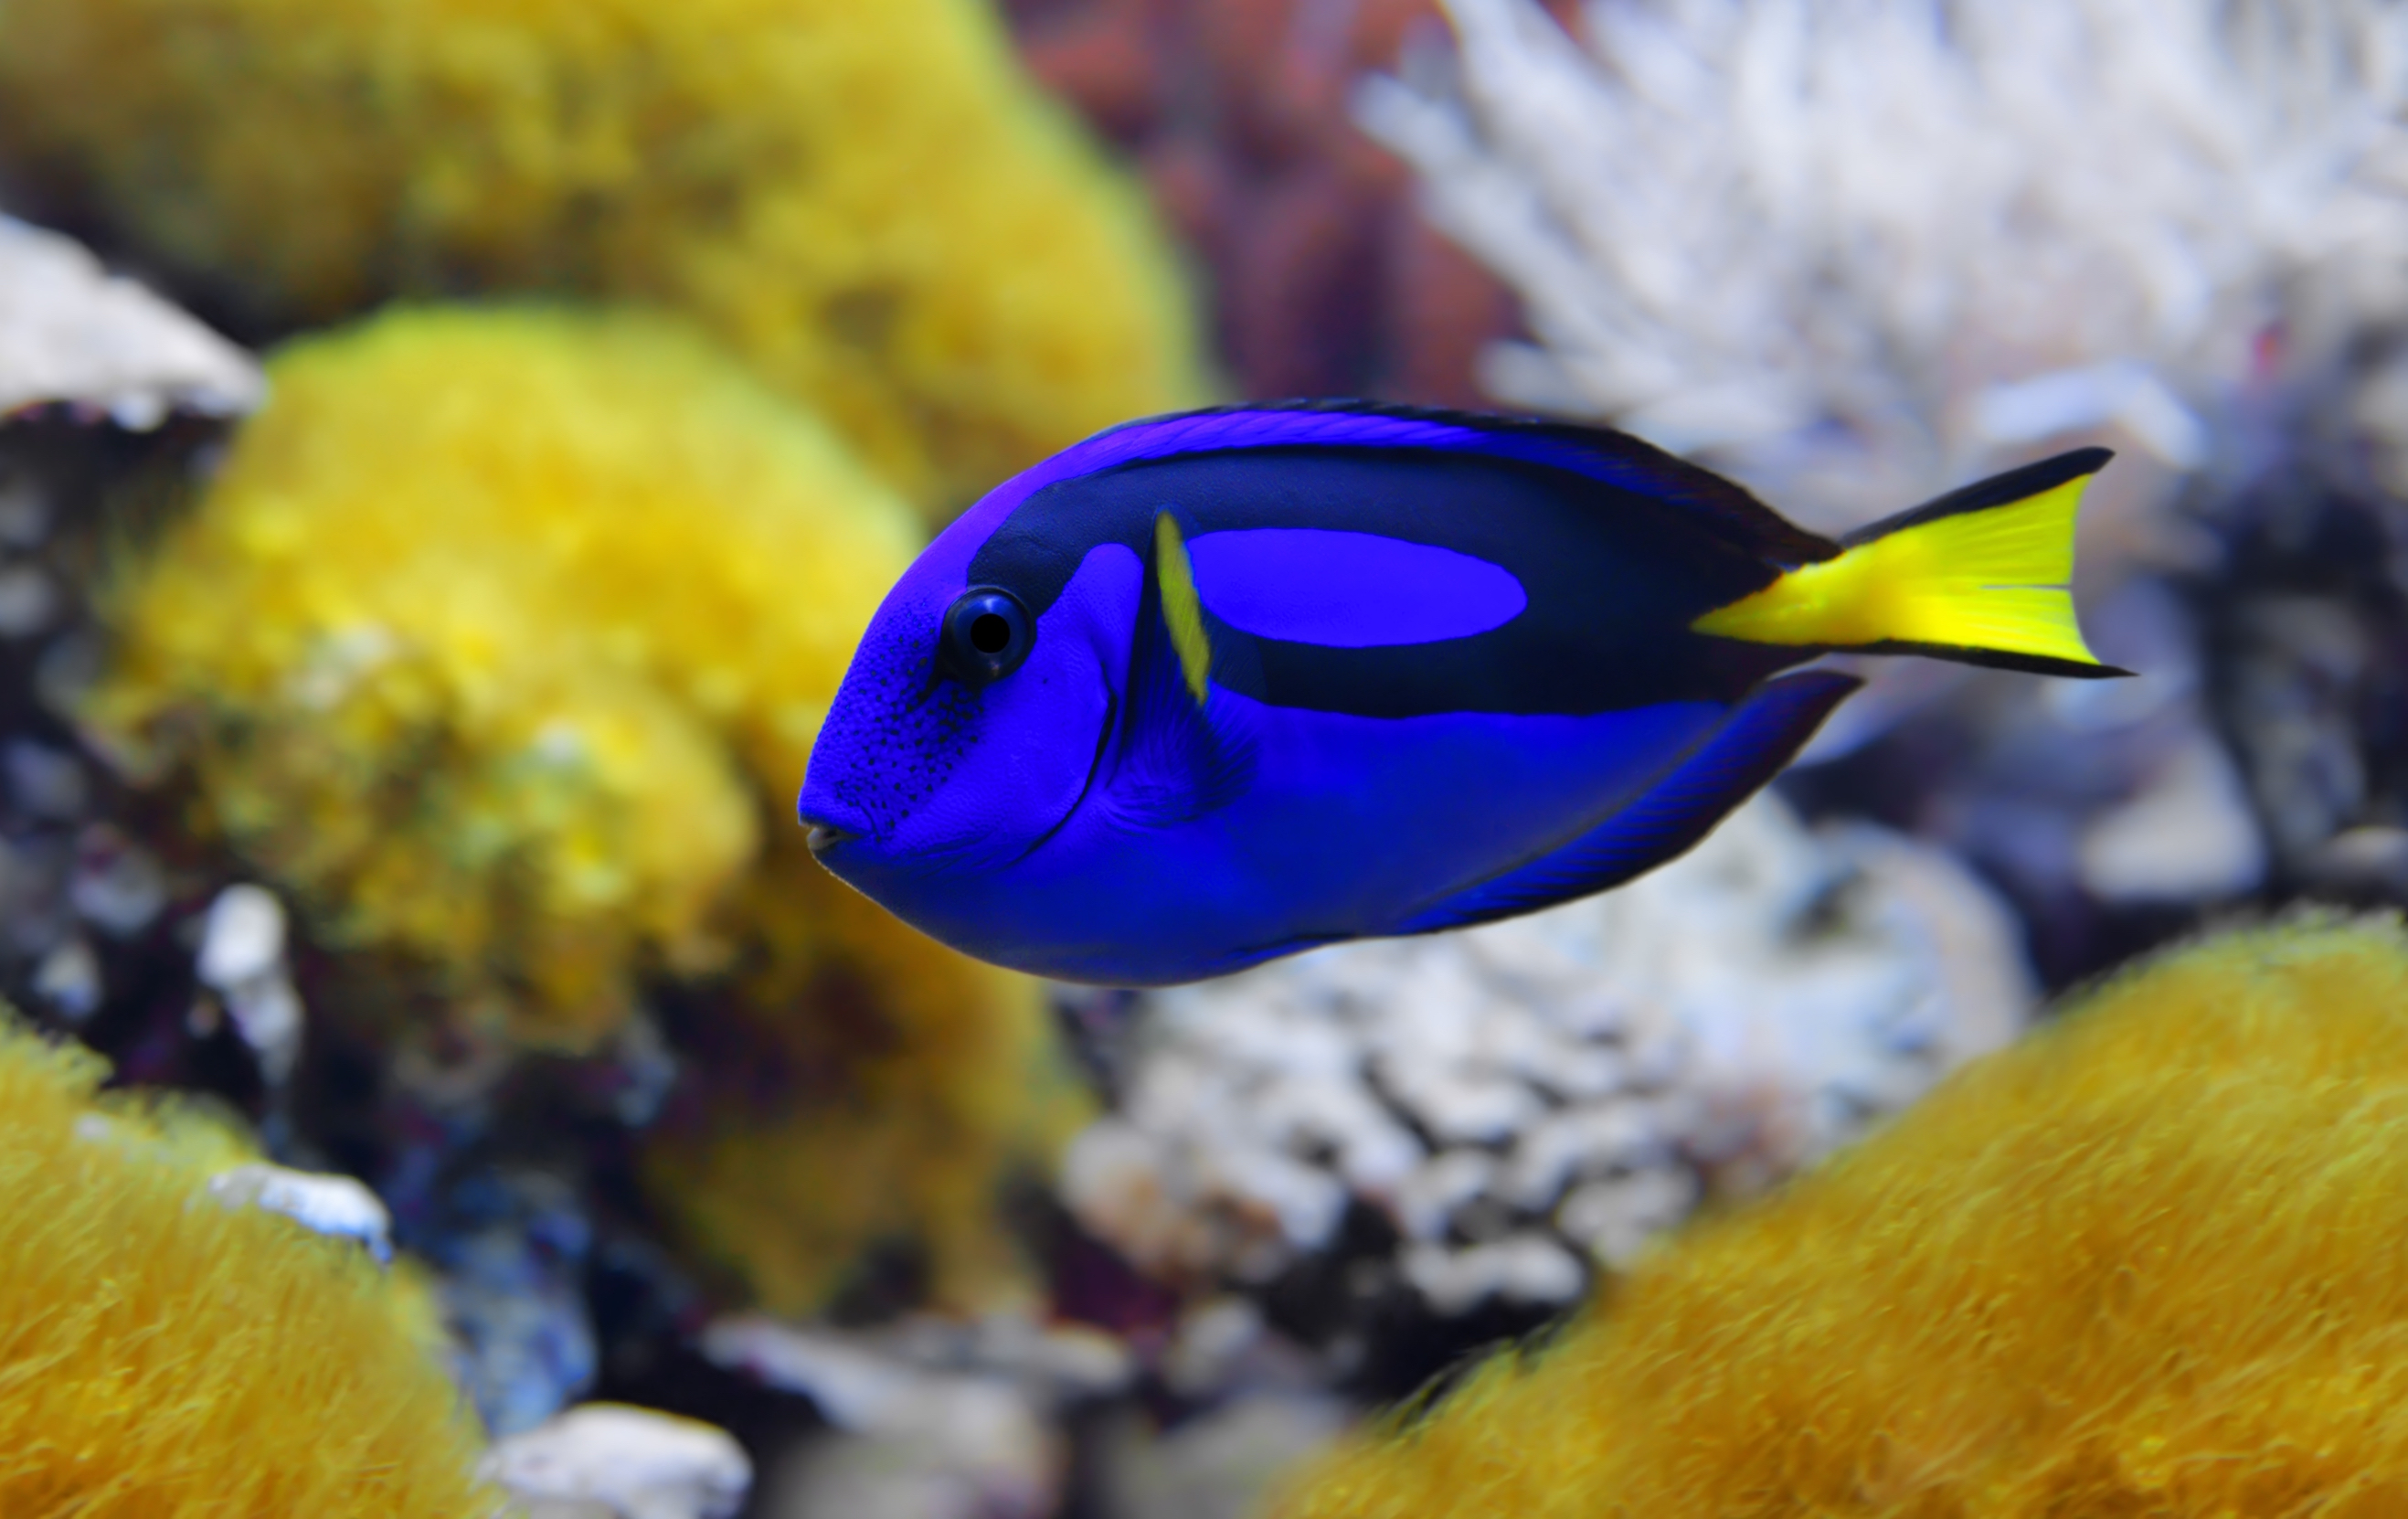 Fish cognition: Why Dory isn't as dumb as she seems • Earth.com